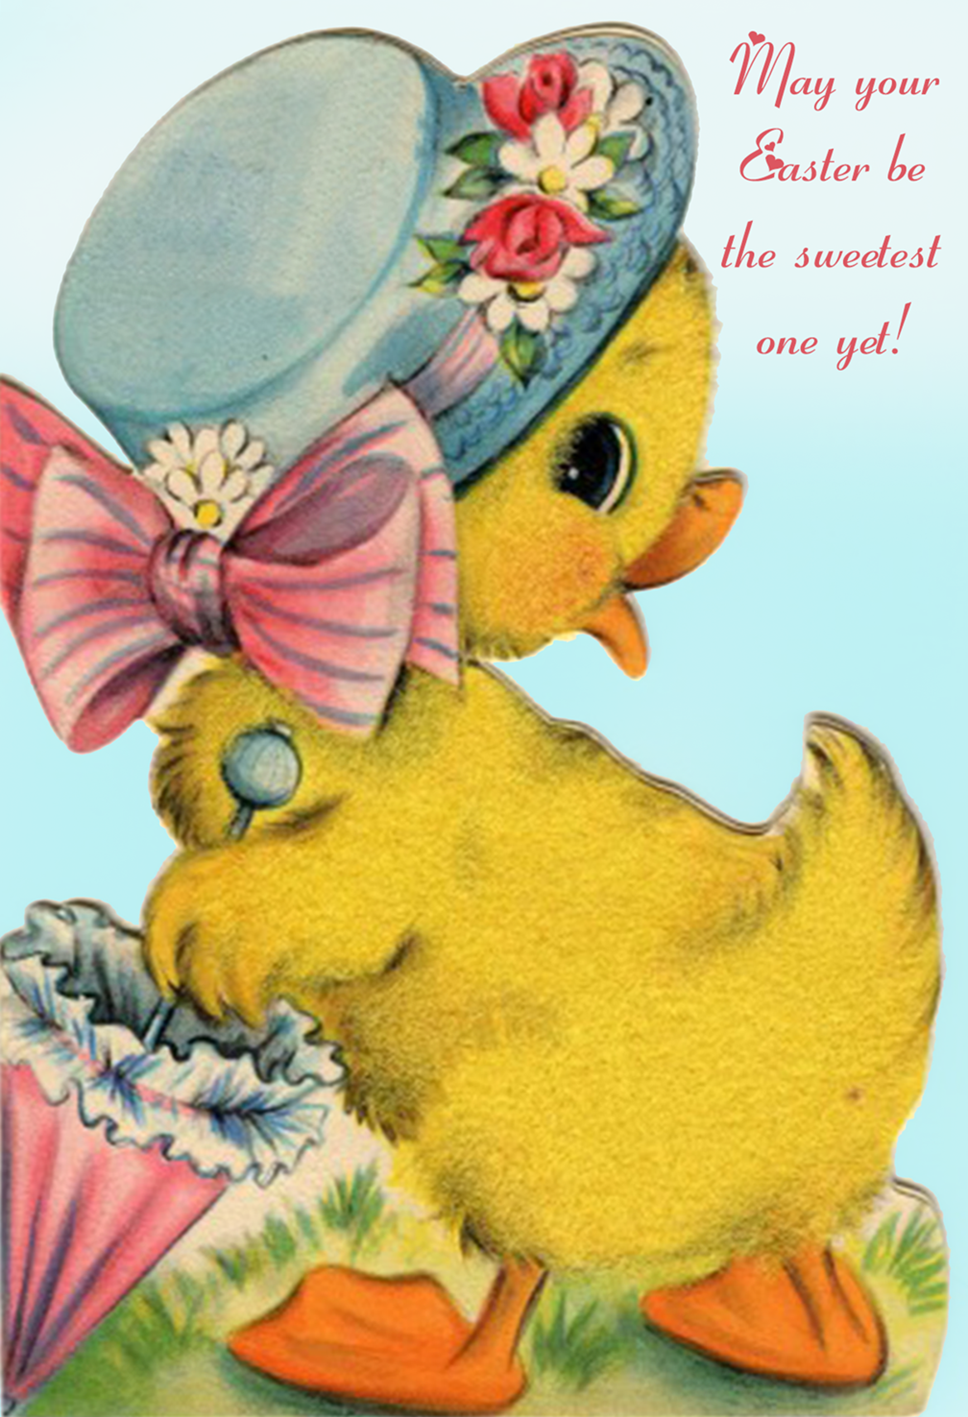 Free vintage Easter card with cute little duckling.